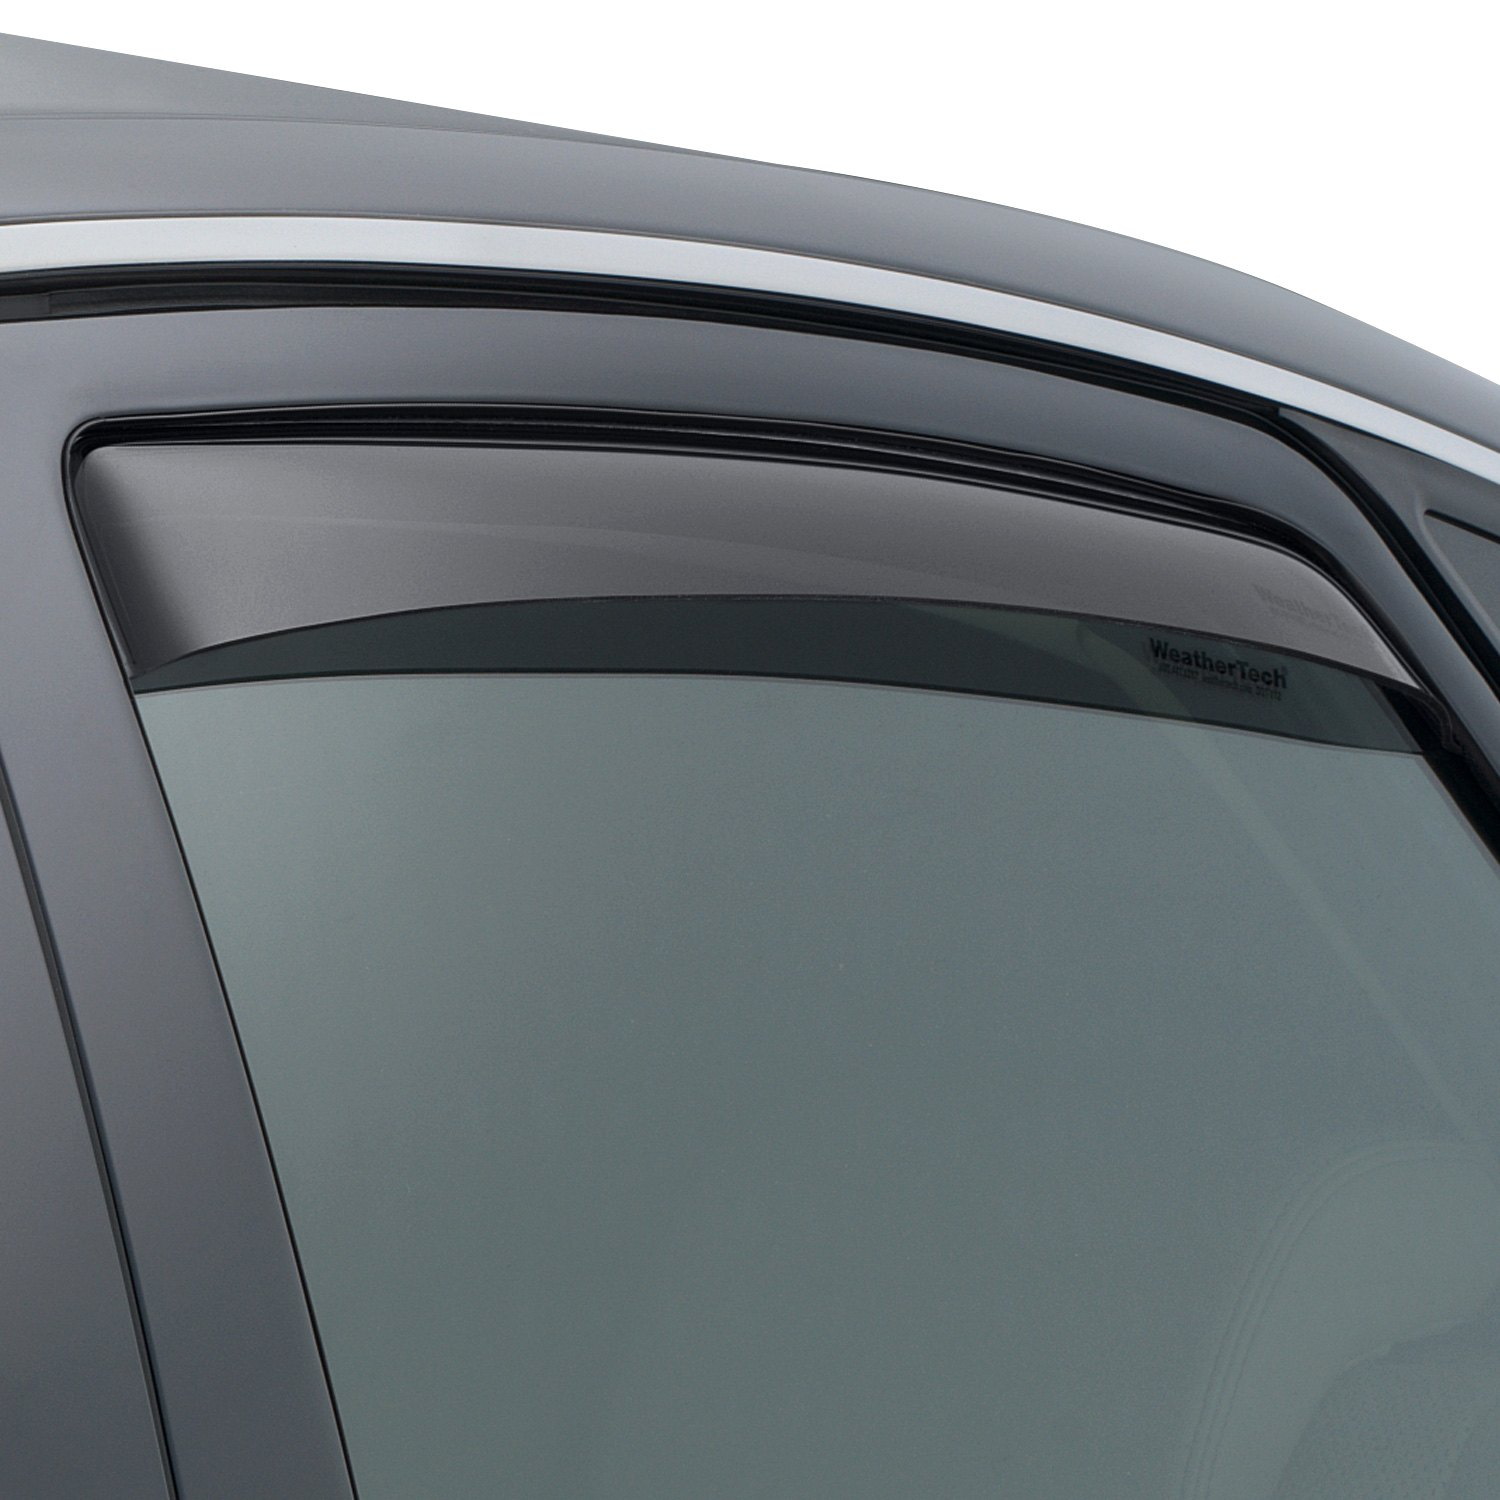 Weathertech 81375 in channel dark smoke rear side for Window guards